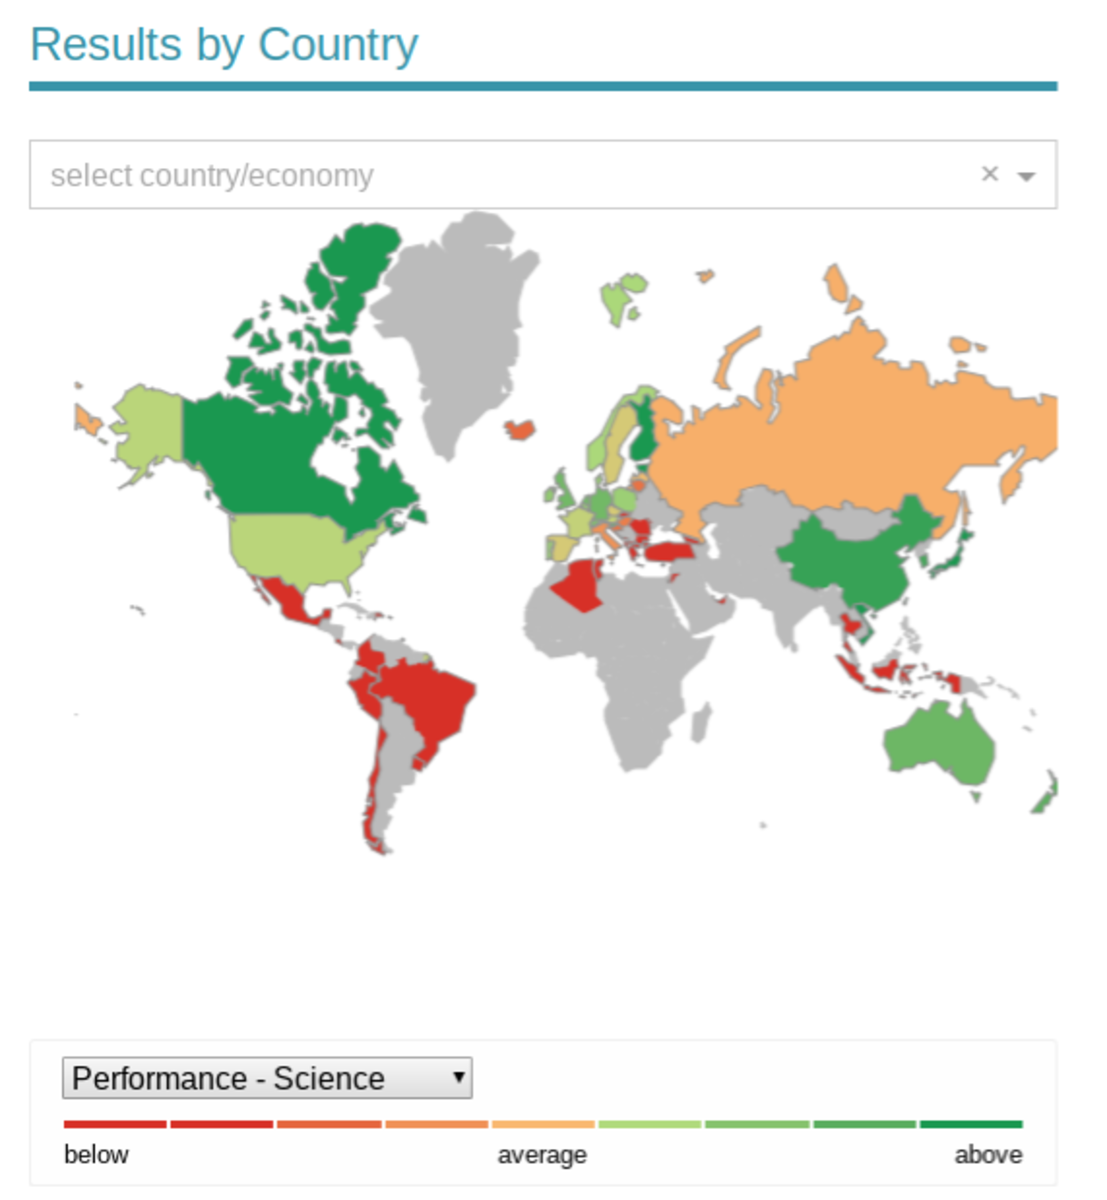 2009 was the last time Panama participated in the PISA test. The PISA is known for its testing of high school students around the world, especially in math and reading. It is conducted by OECD.org to rank educational results on a world scale.